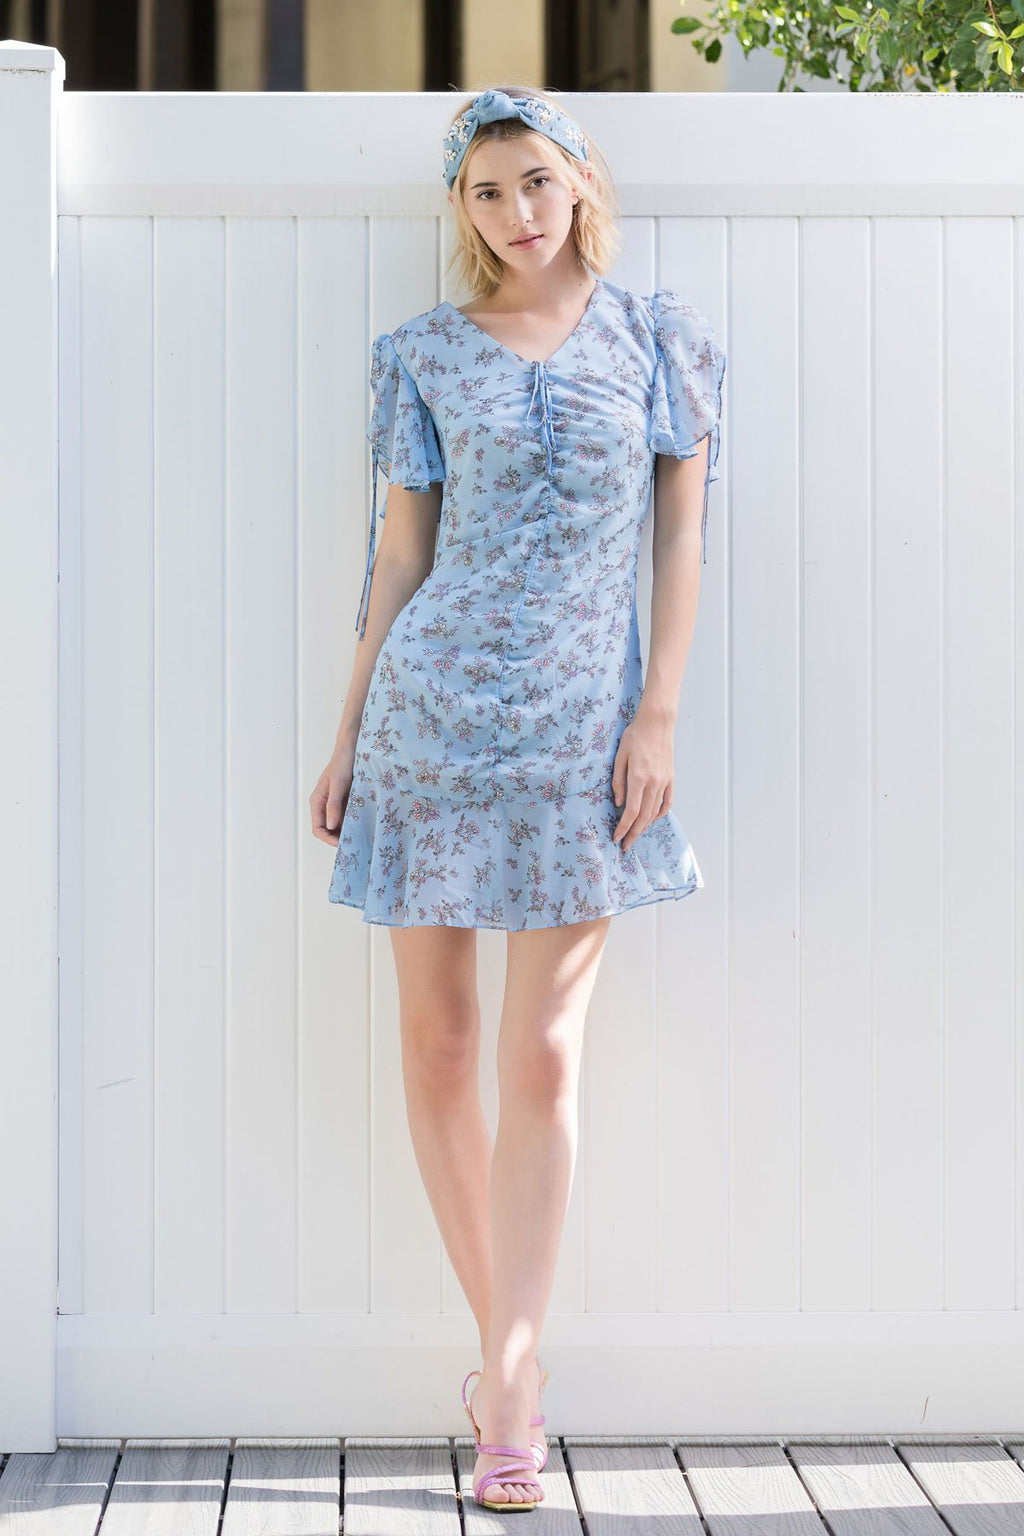 The Katrina Dress in Dresses by J.ING - an L.A based women's fashion line